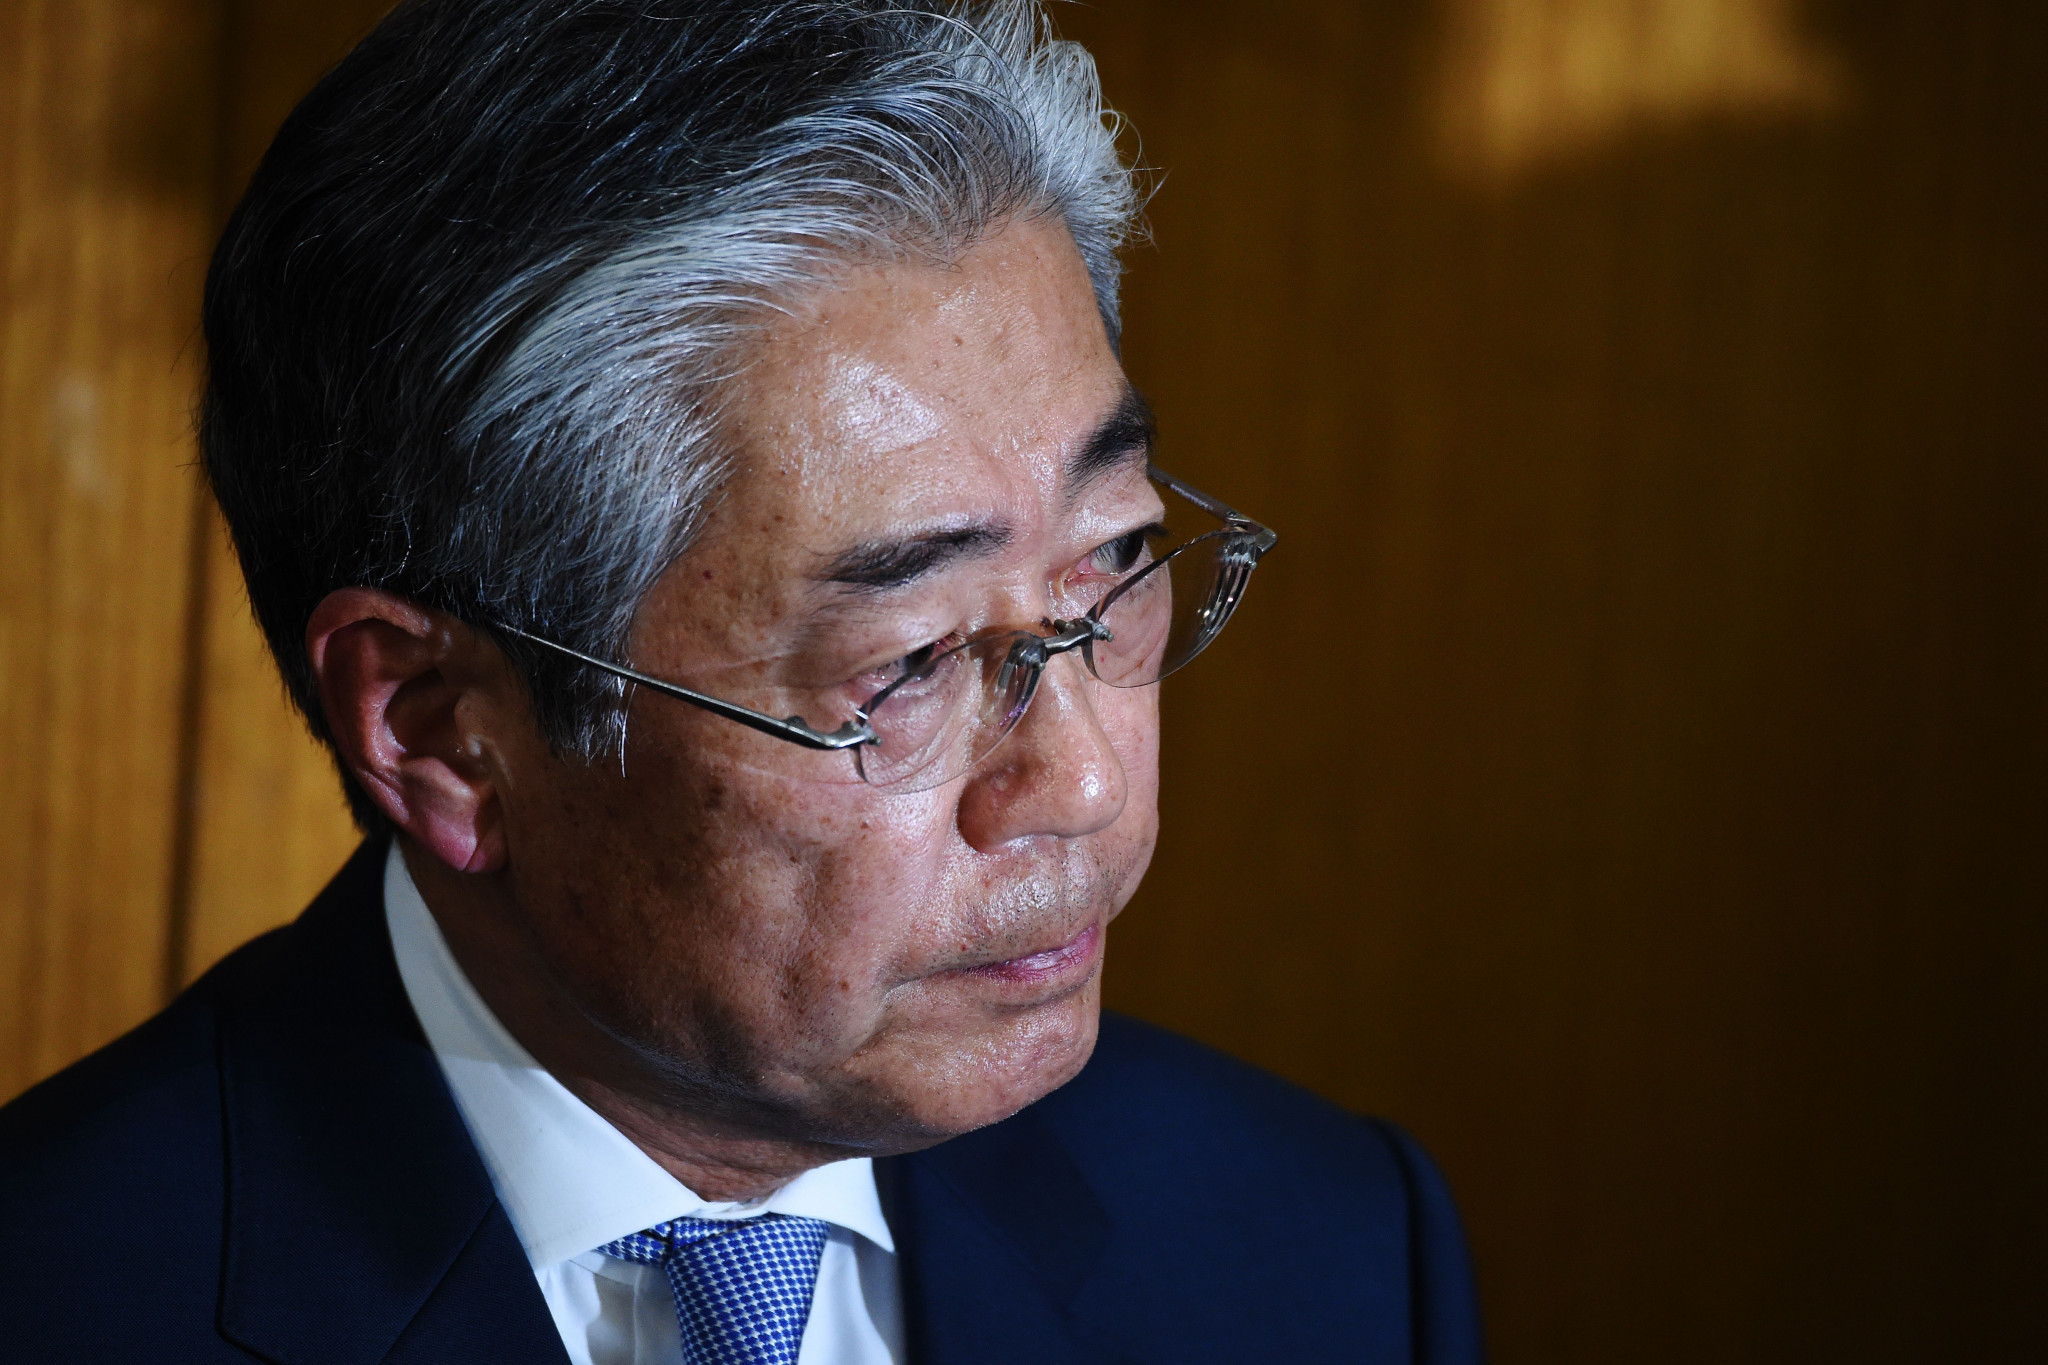 Tsunekazu Takeda's term as JOC President concludes on June 27 after he confirmed he would not seek re-election ©Getty Images